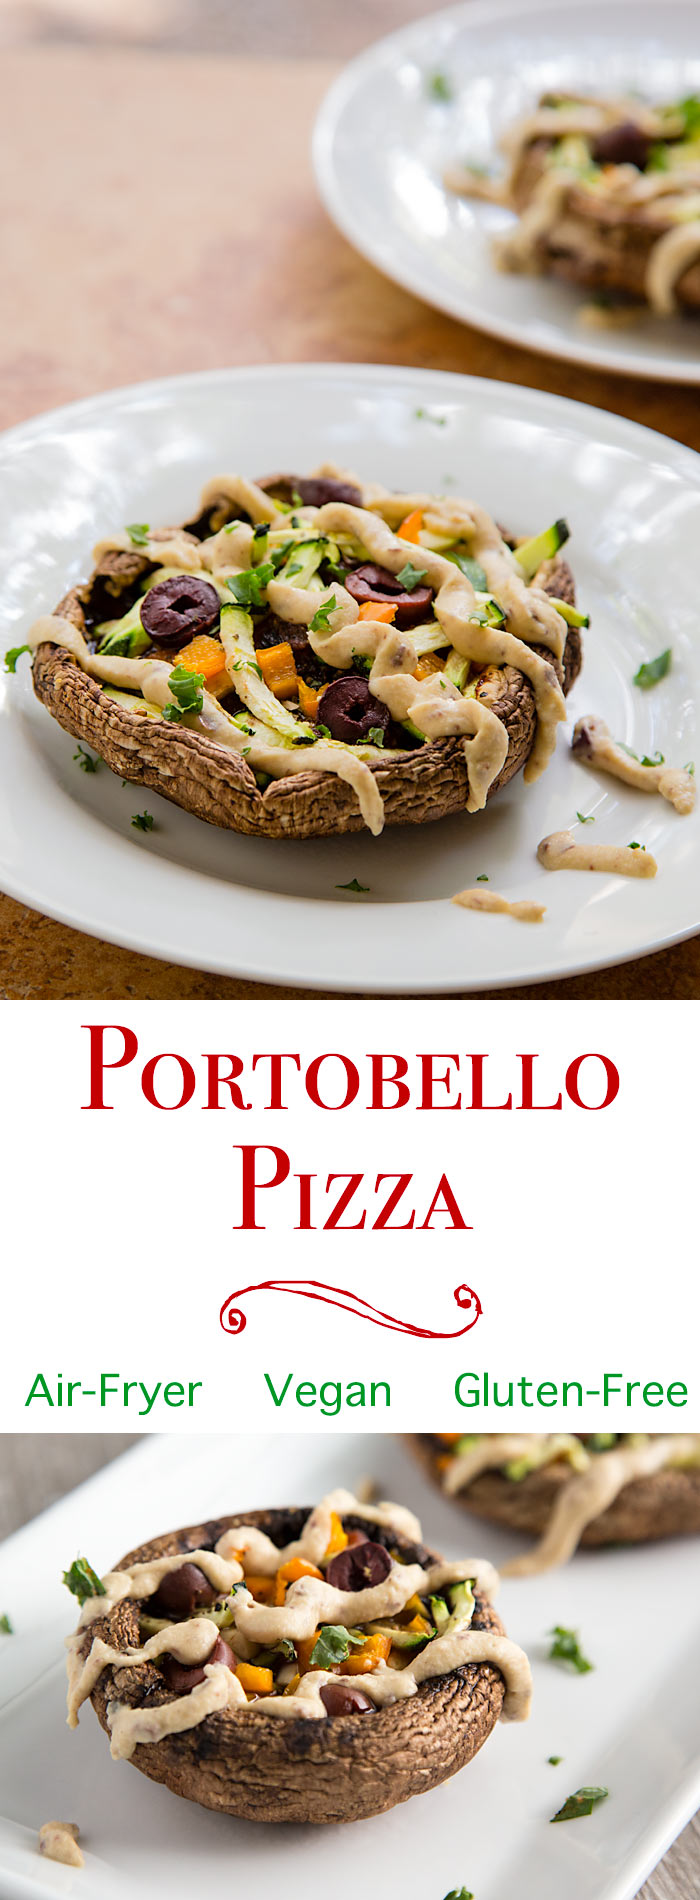 Portobello mushroom pizzas are a light, easy alternative to personal pizzas. Enjoy them as delicious vegan appetizers or snacks. Gluten-free. Oil-free. Air Fryer.